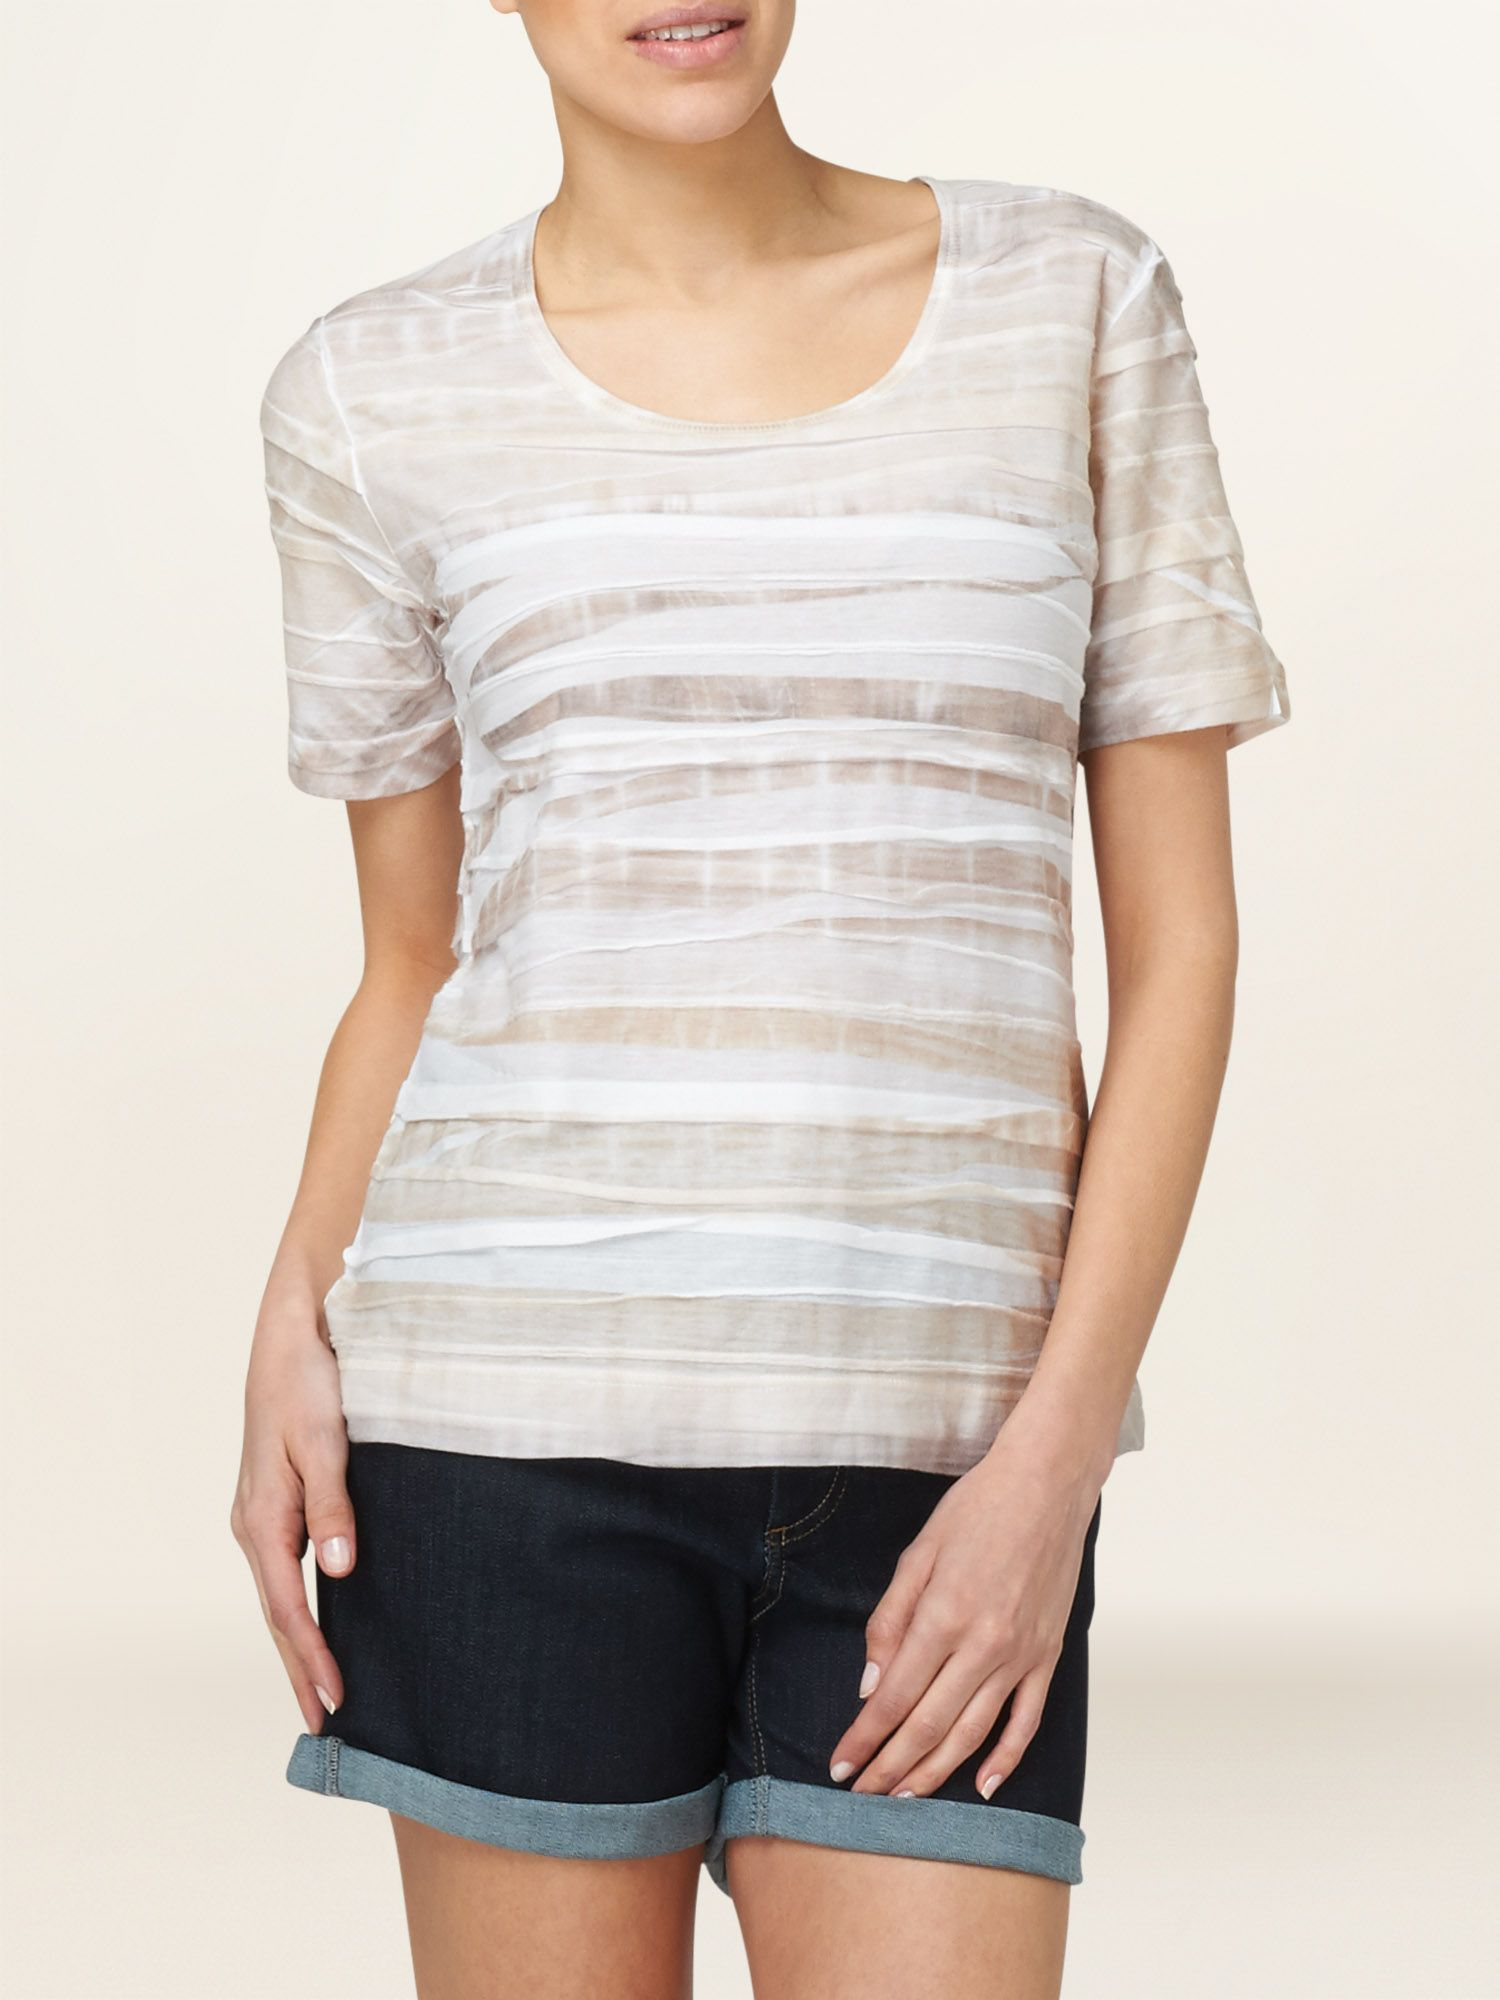 Cassie layered t-shirt